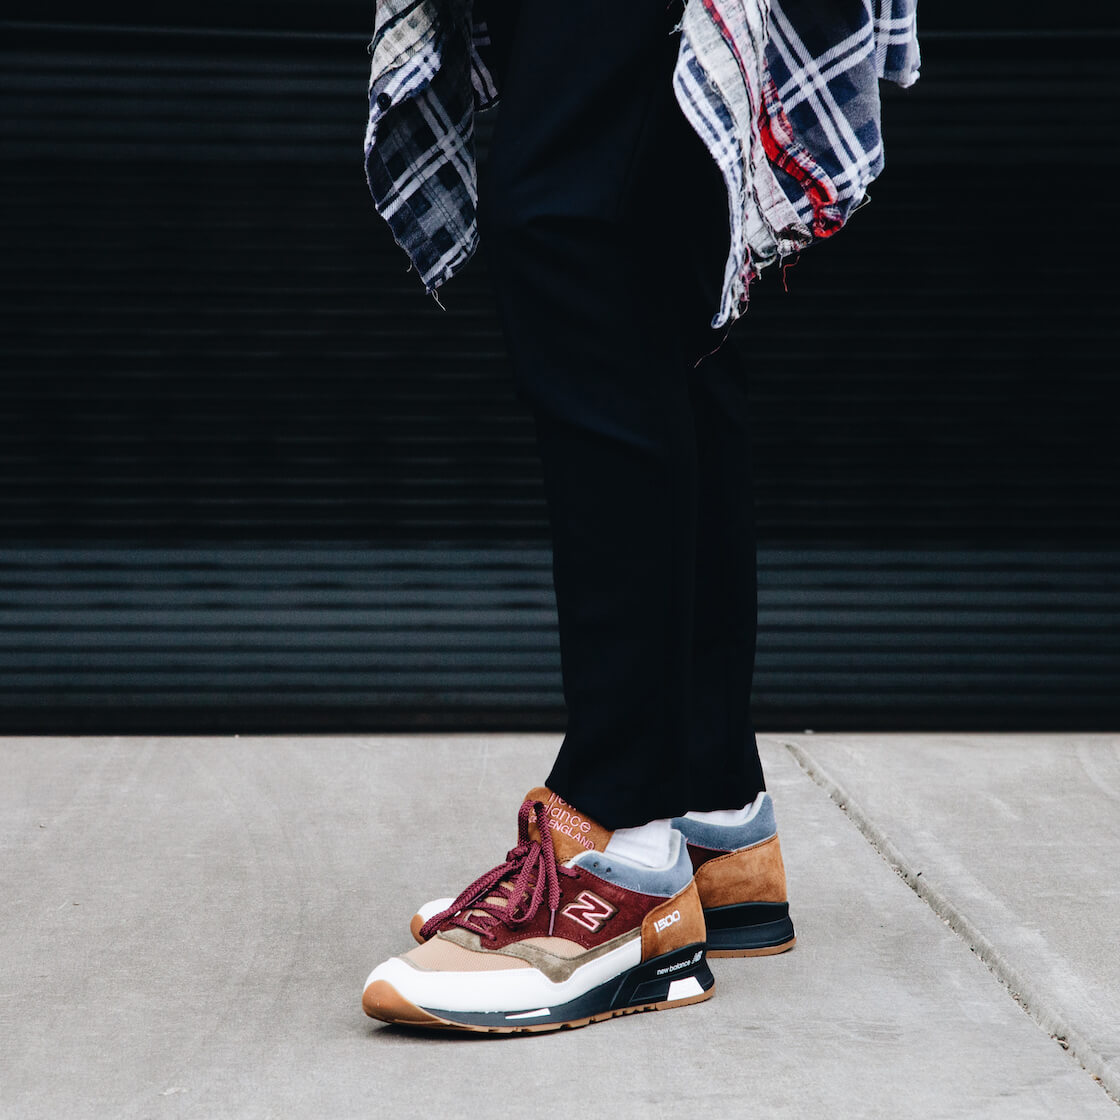 new balance 1500 shoes on body